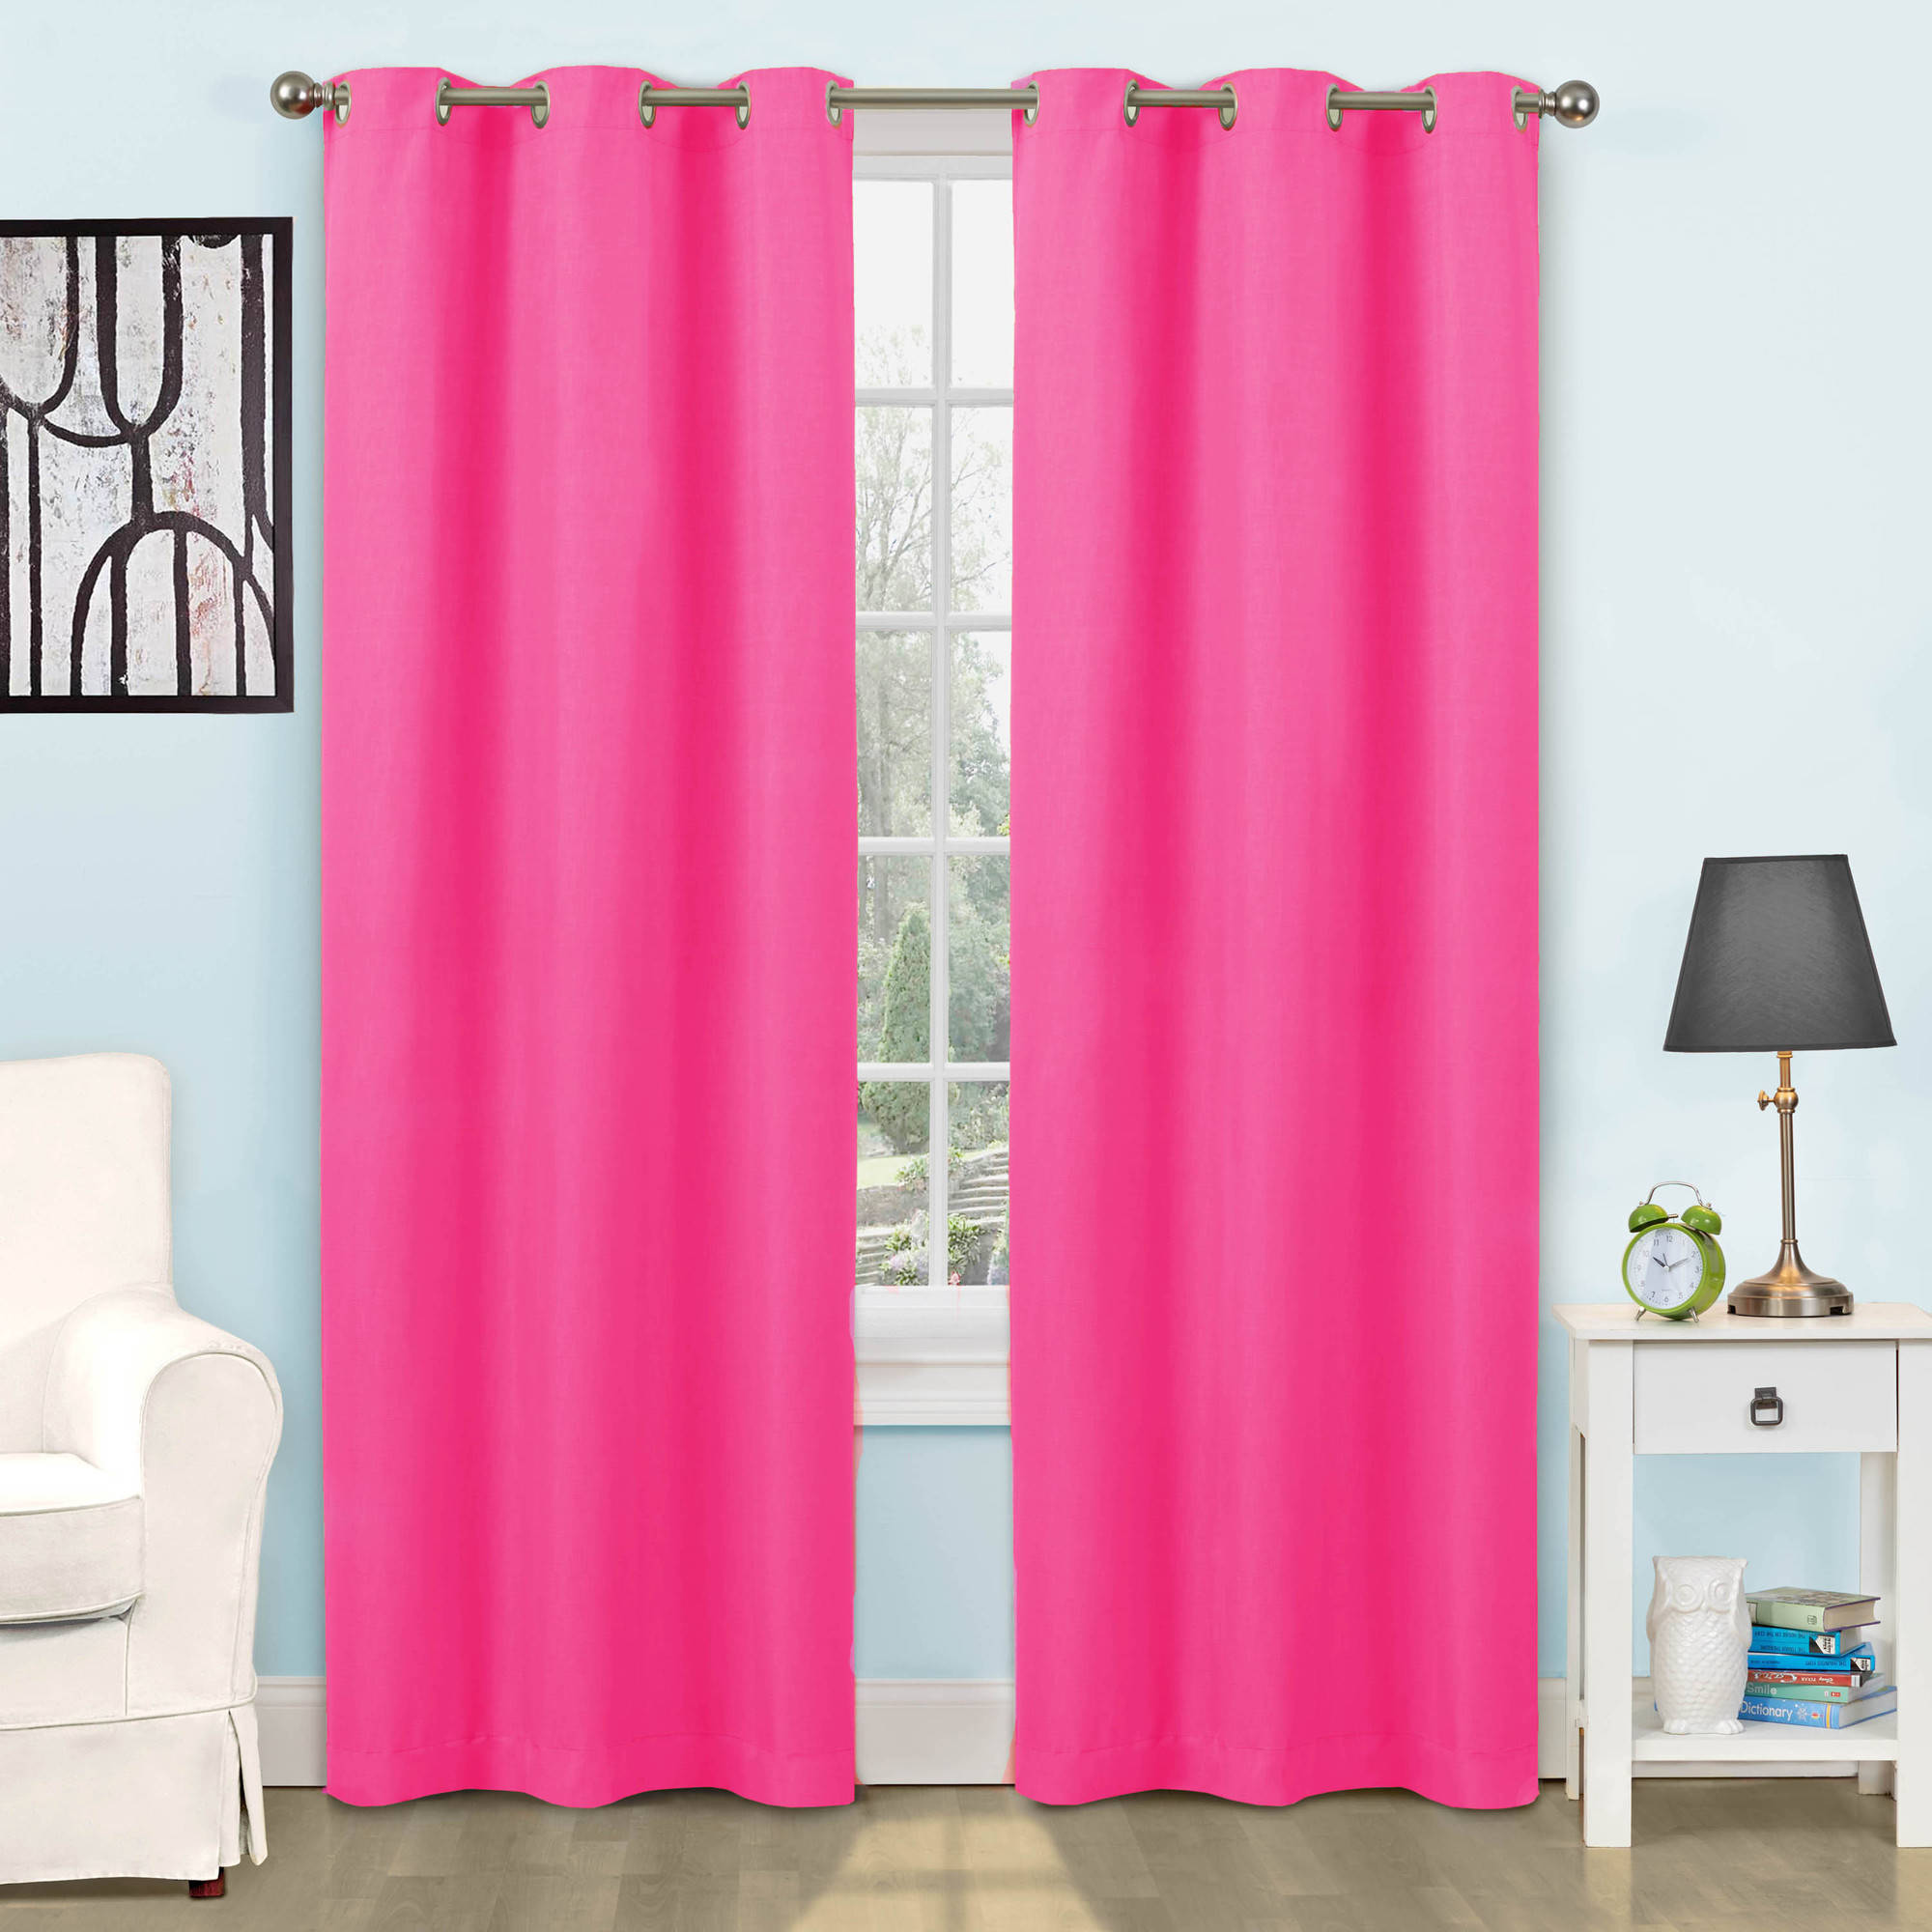 Eclipse dayton blackout energy efficient kids bedroom curtain panel